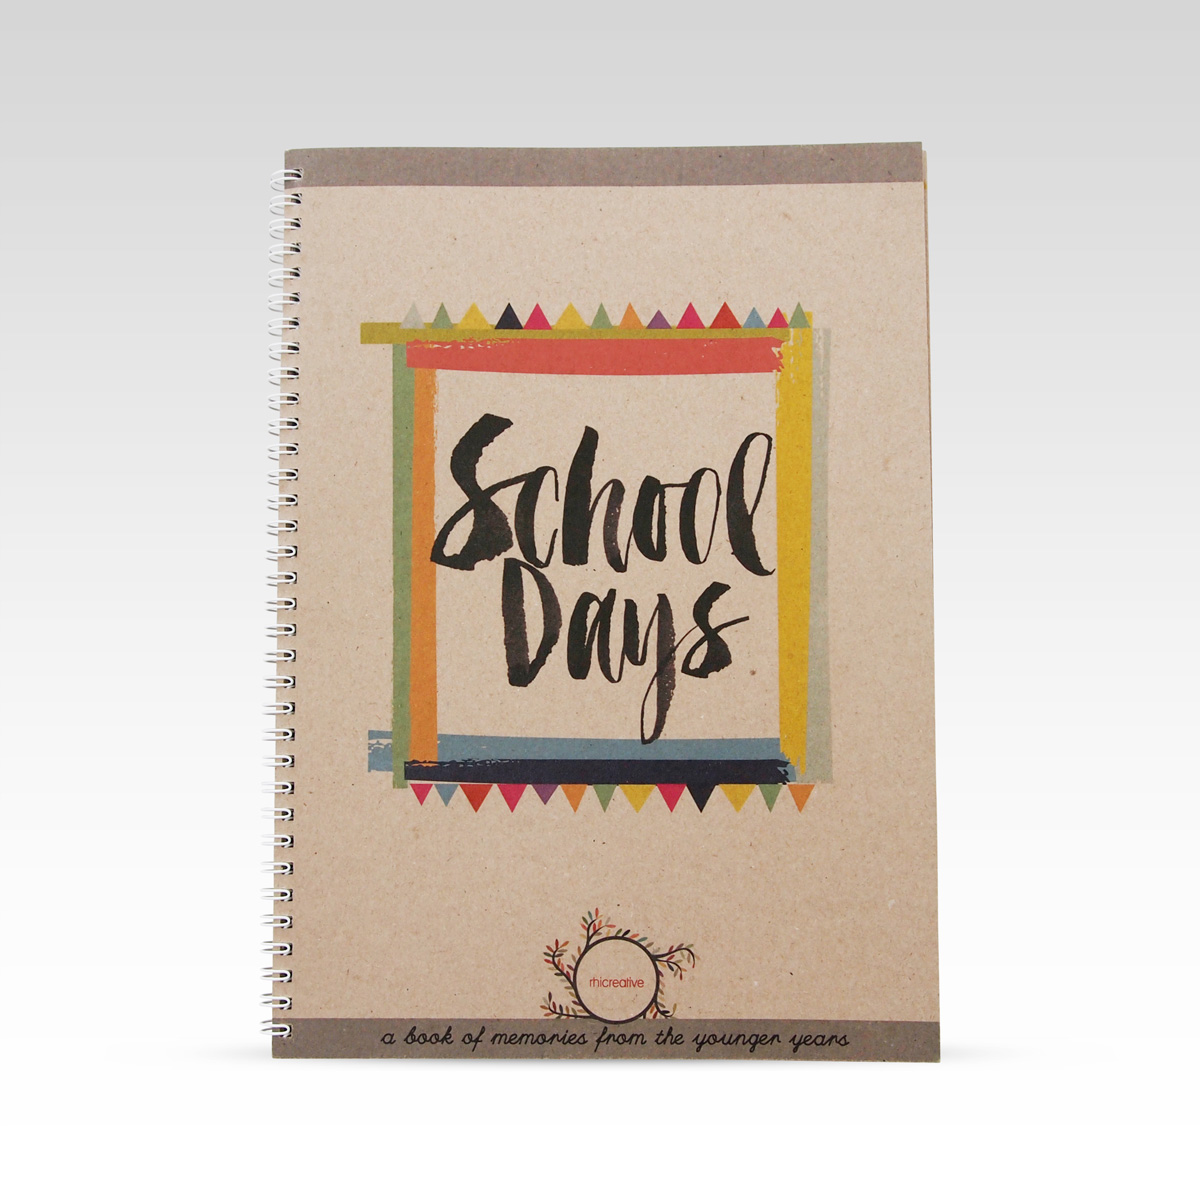 School Days Book | school-days-cover.jpg